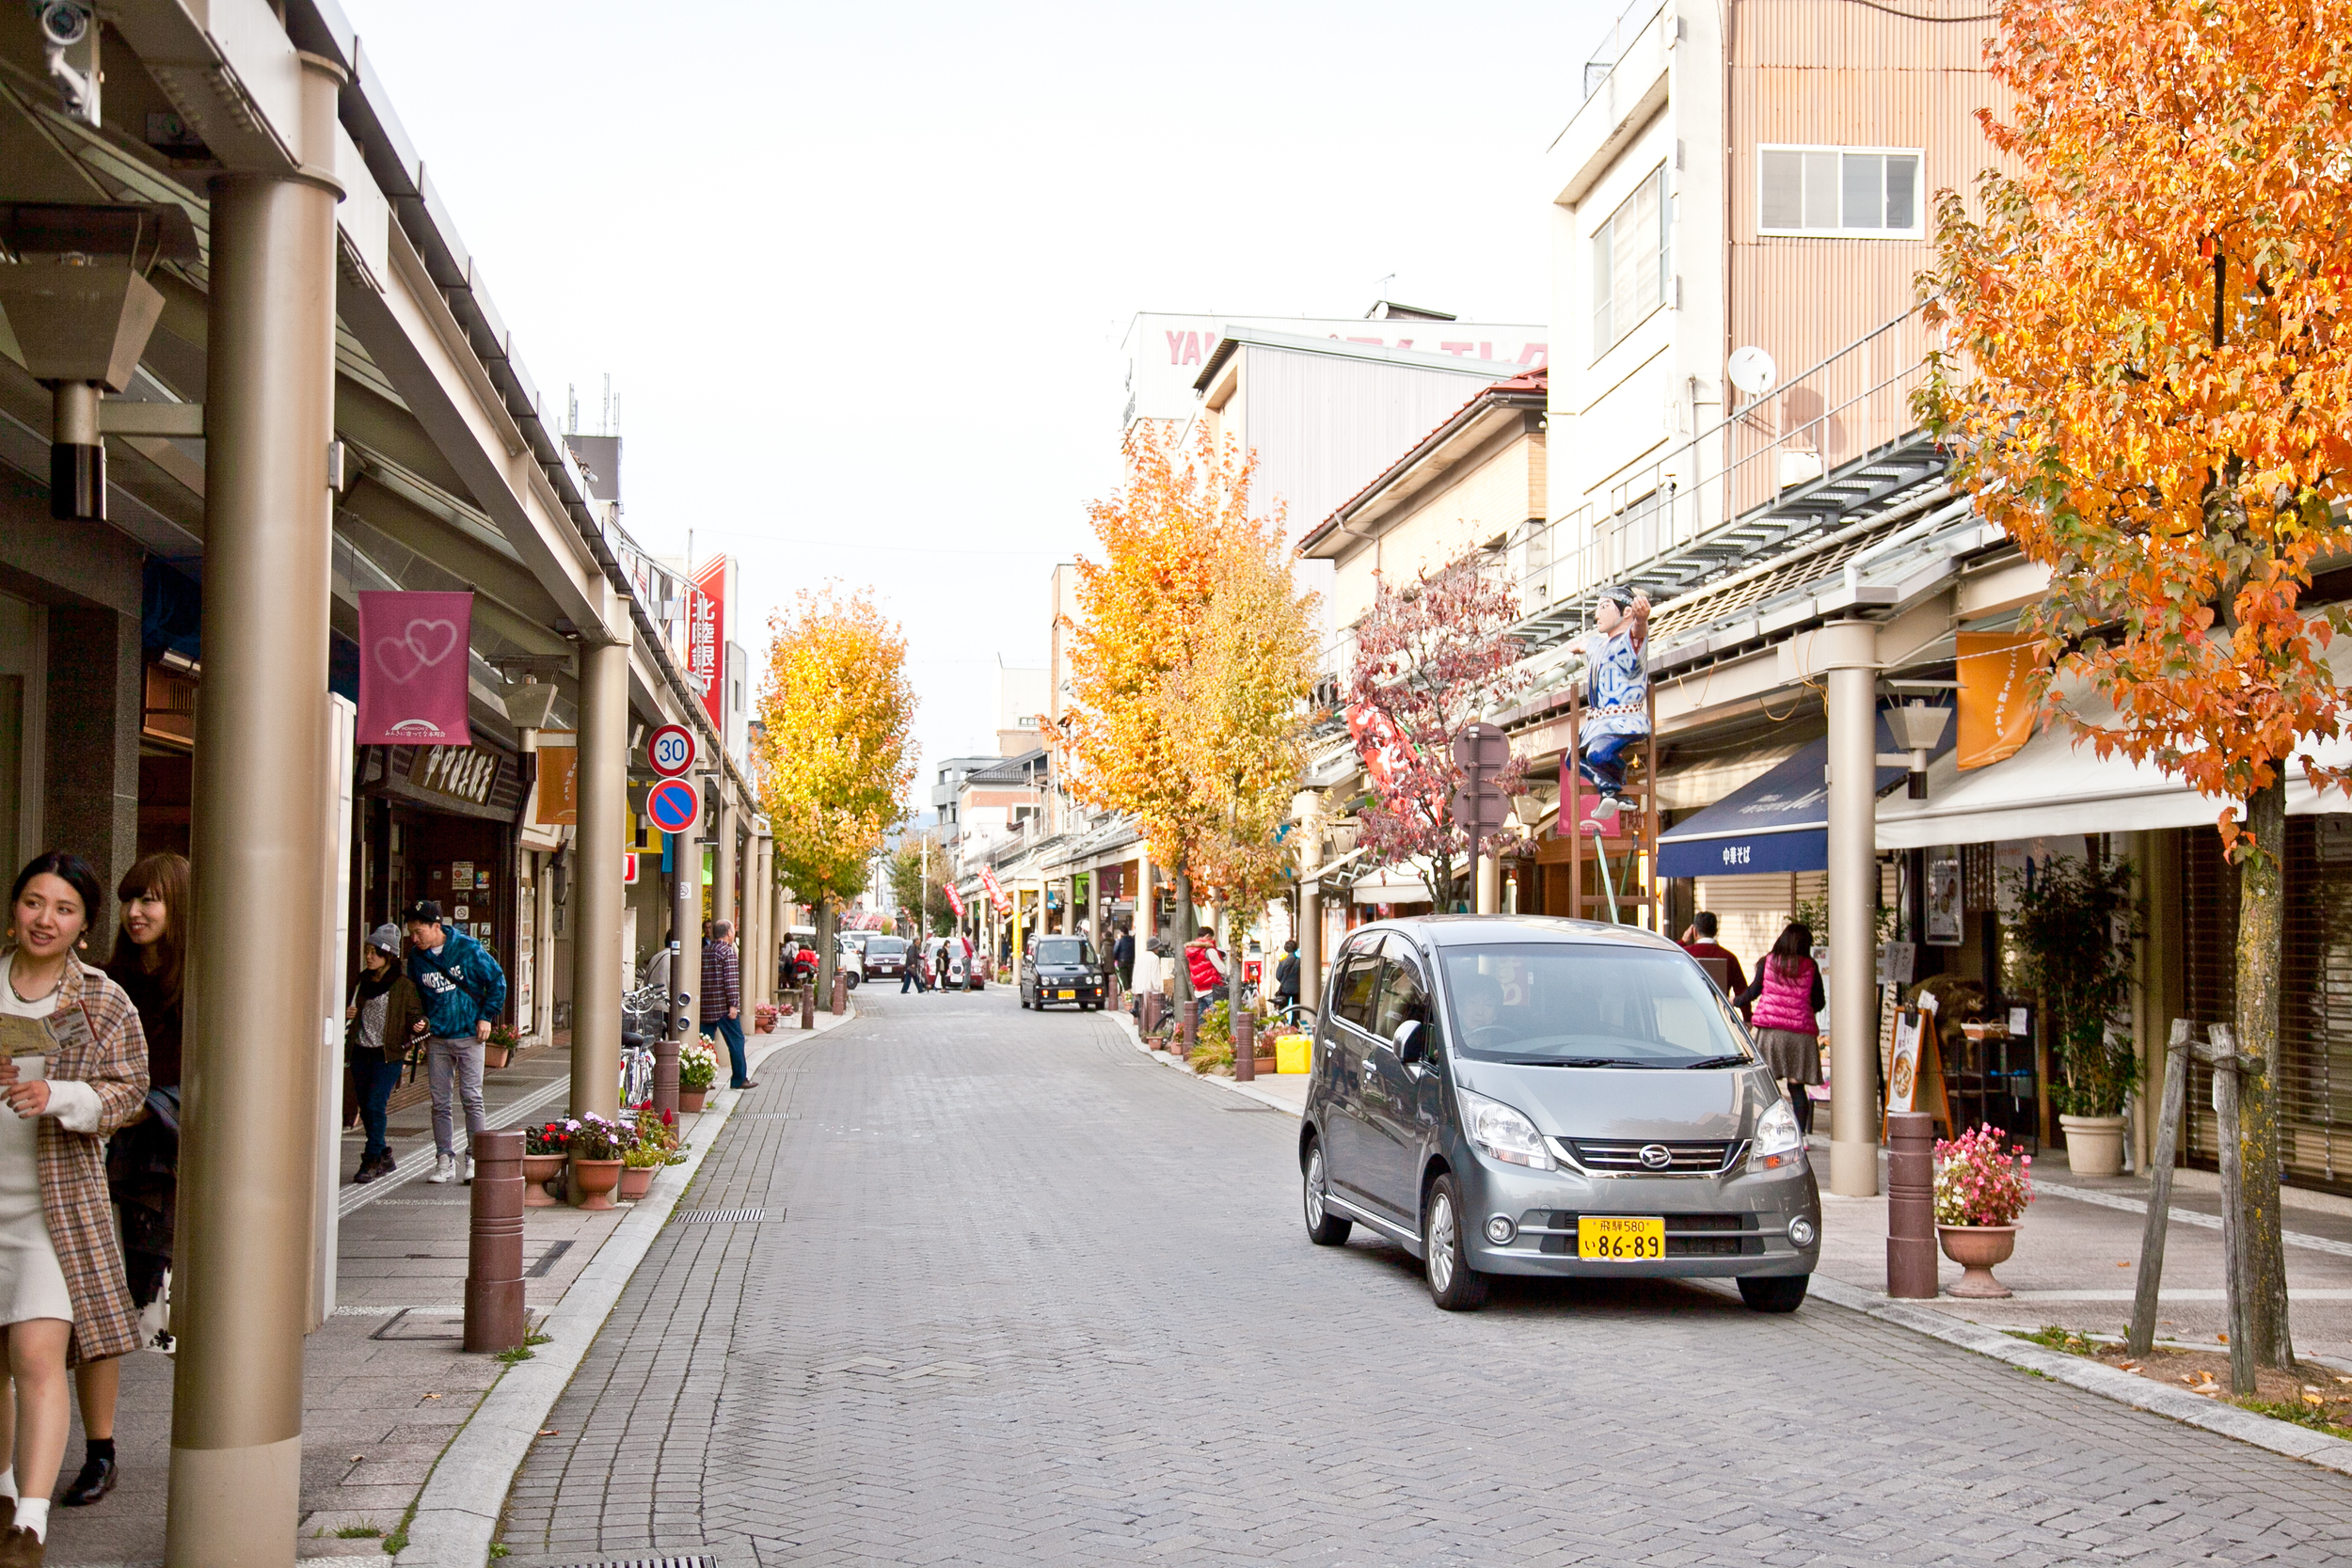 One of the main streets in the town - lined with restaurants and small shops!